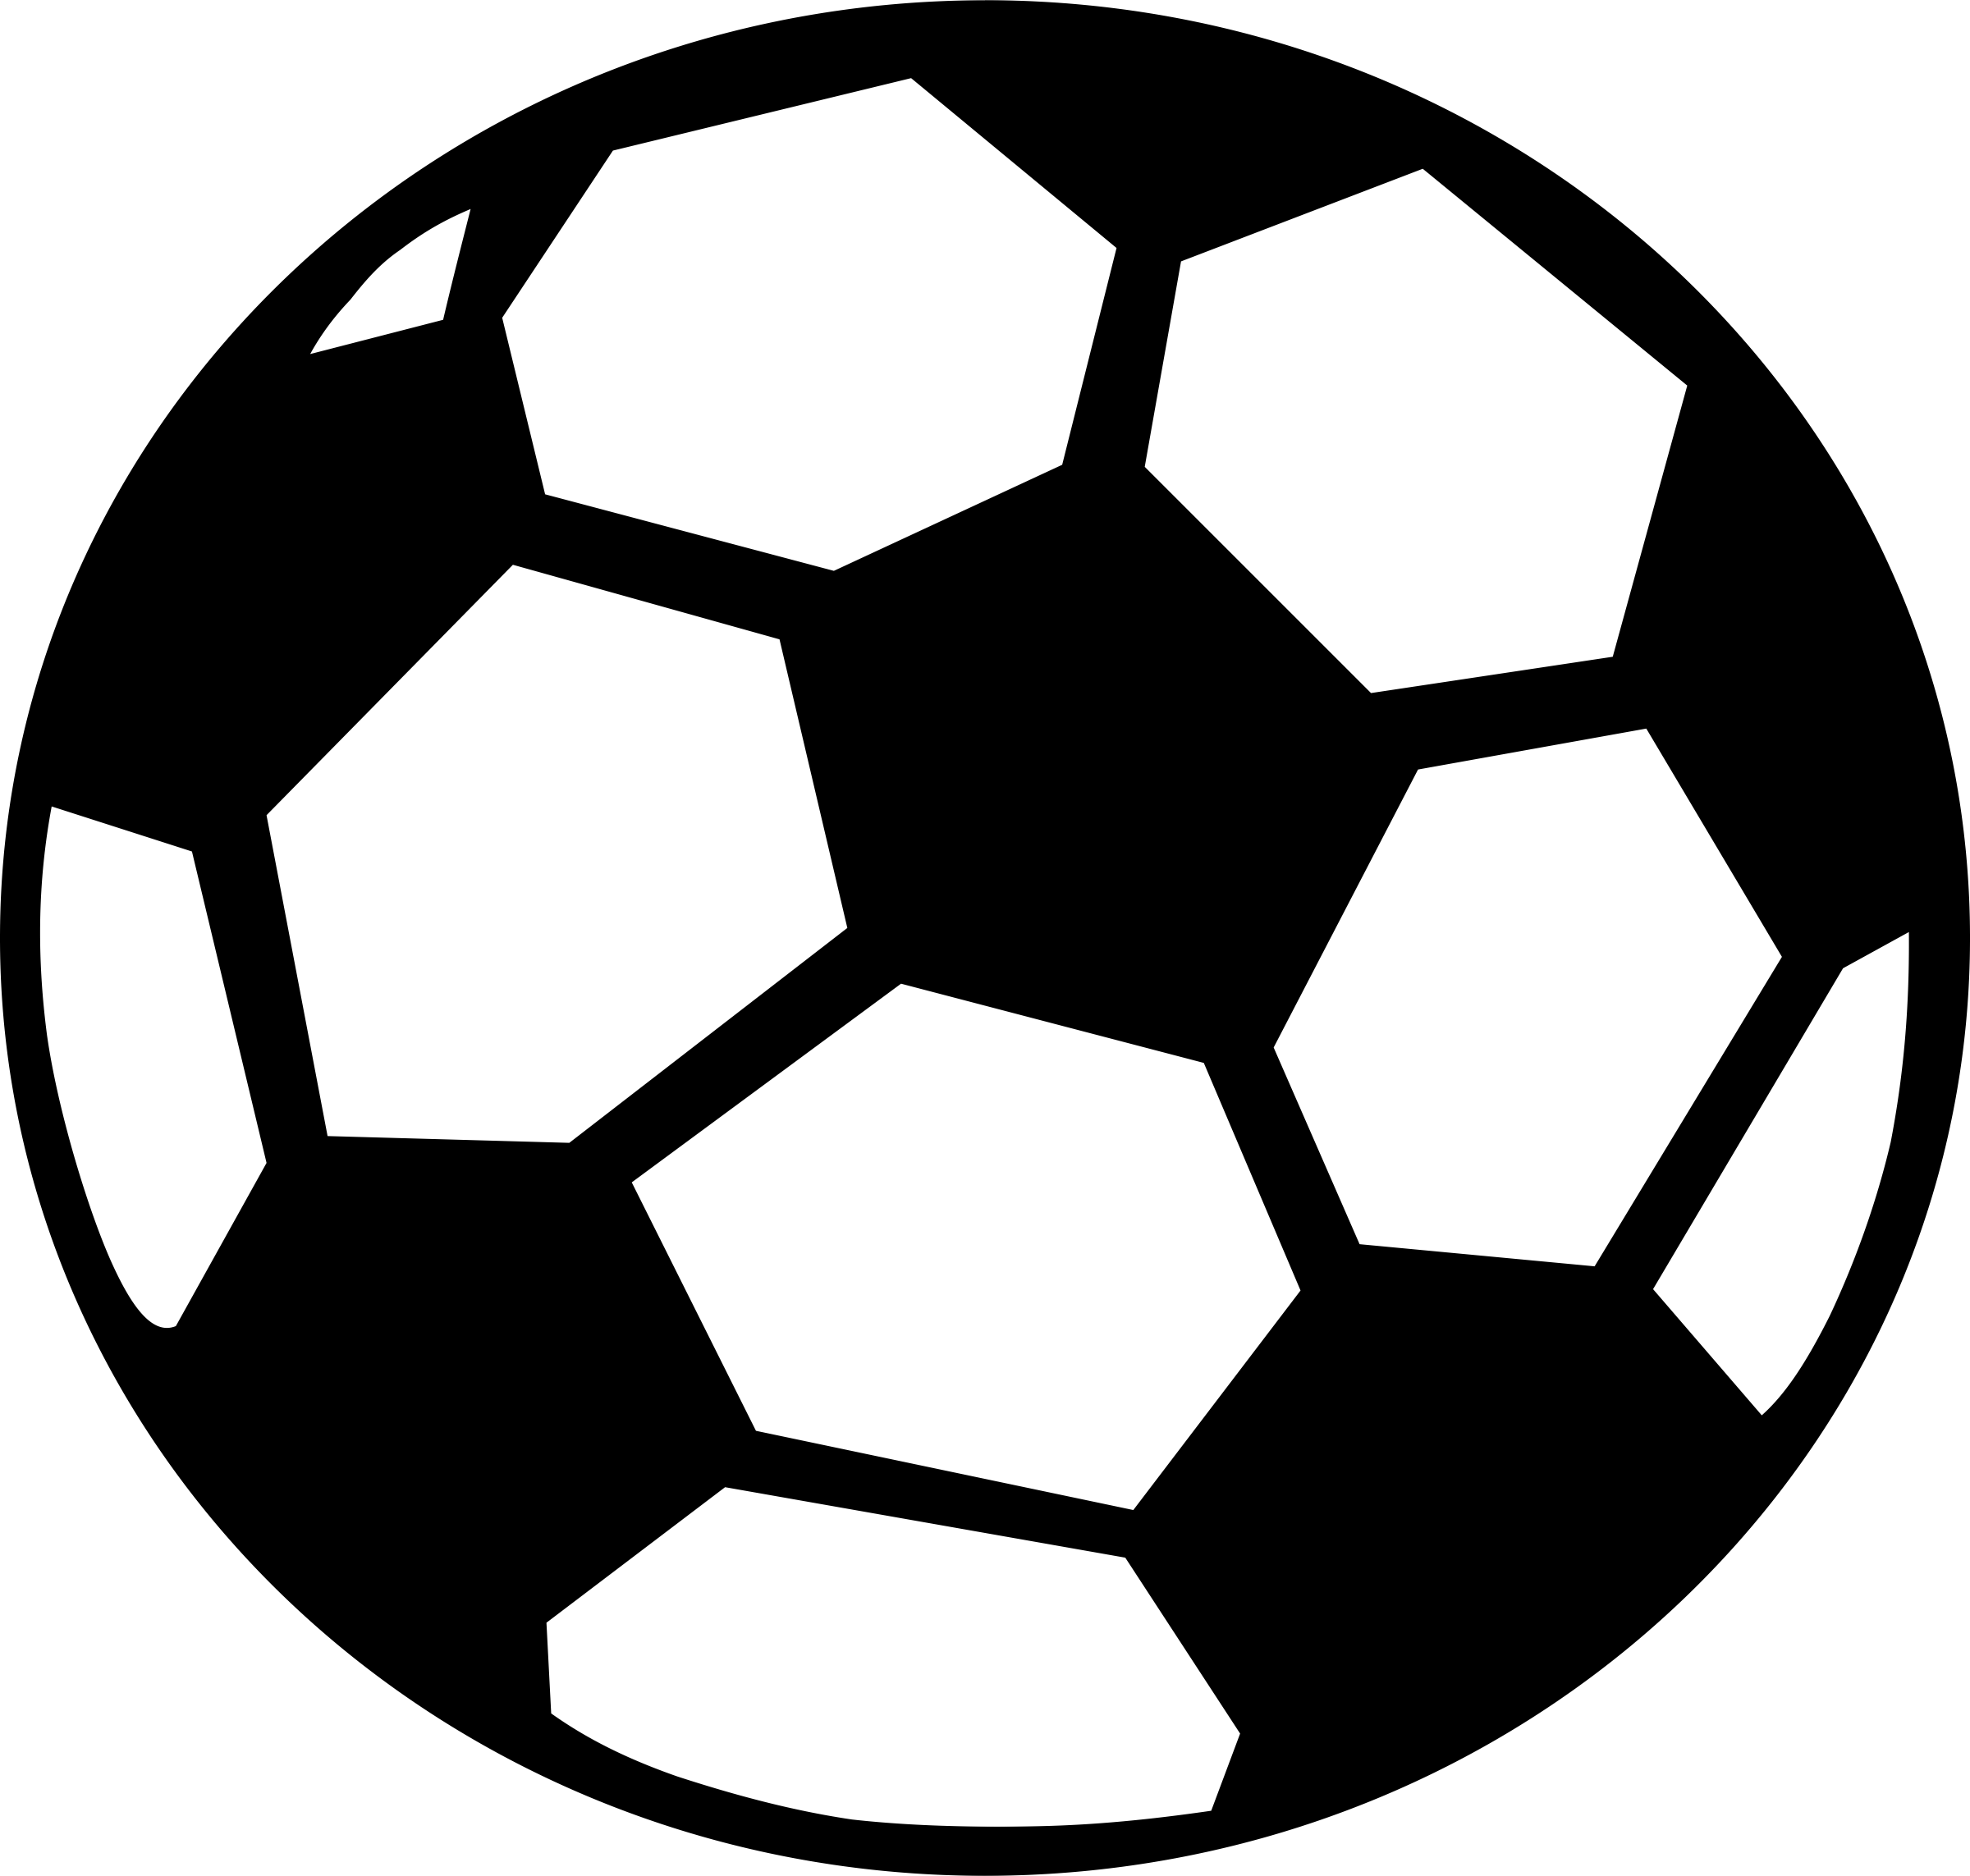 Soccer Ball v2 by oksmith